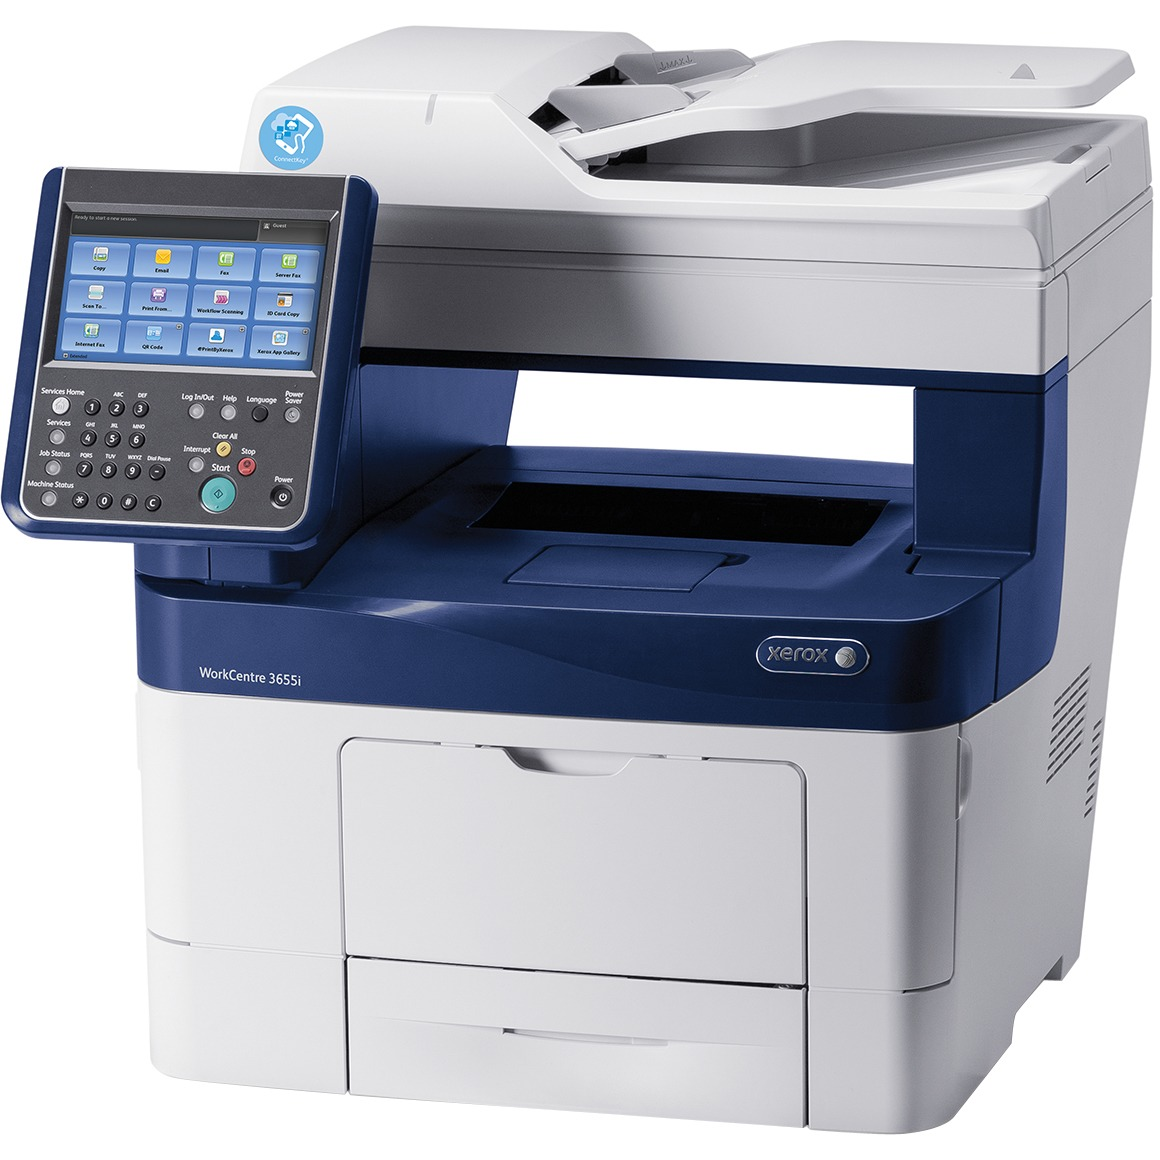 Xerox WorkCentre 3655IX Mono Laser Multifunction Printer/Copier/Scanner/Fax  Machine